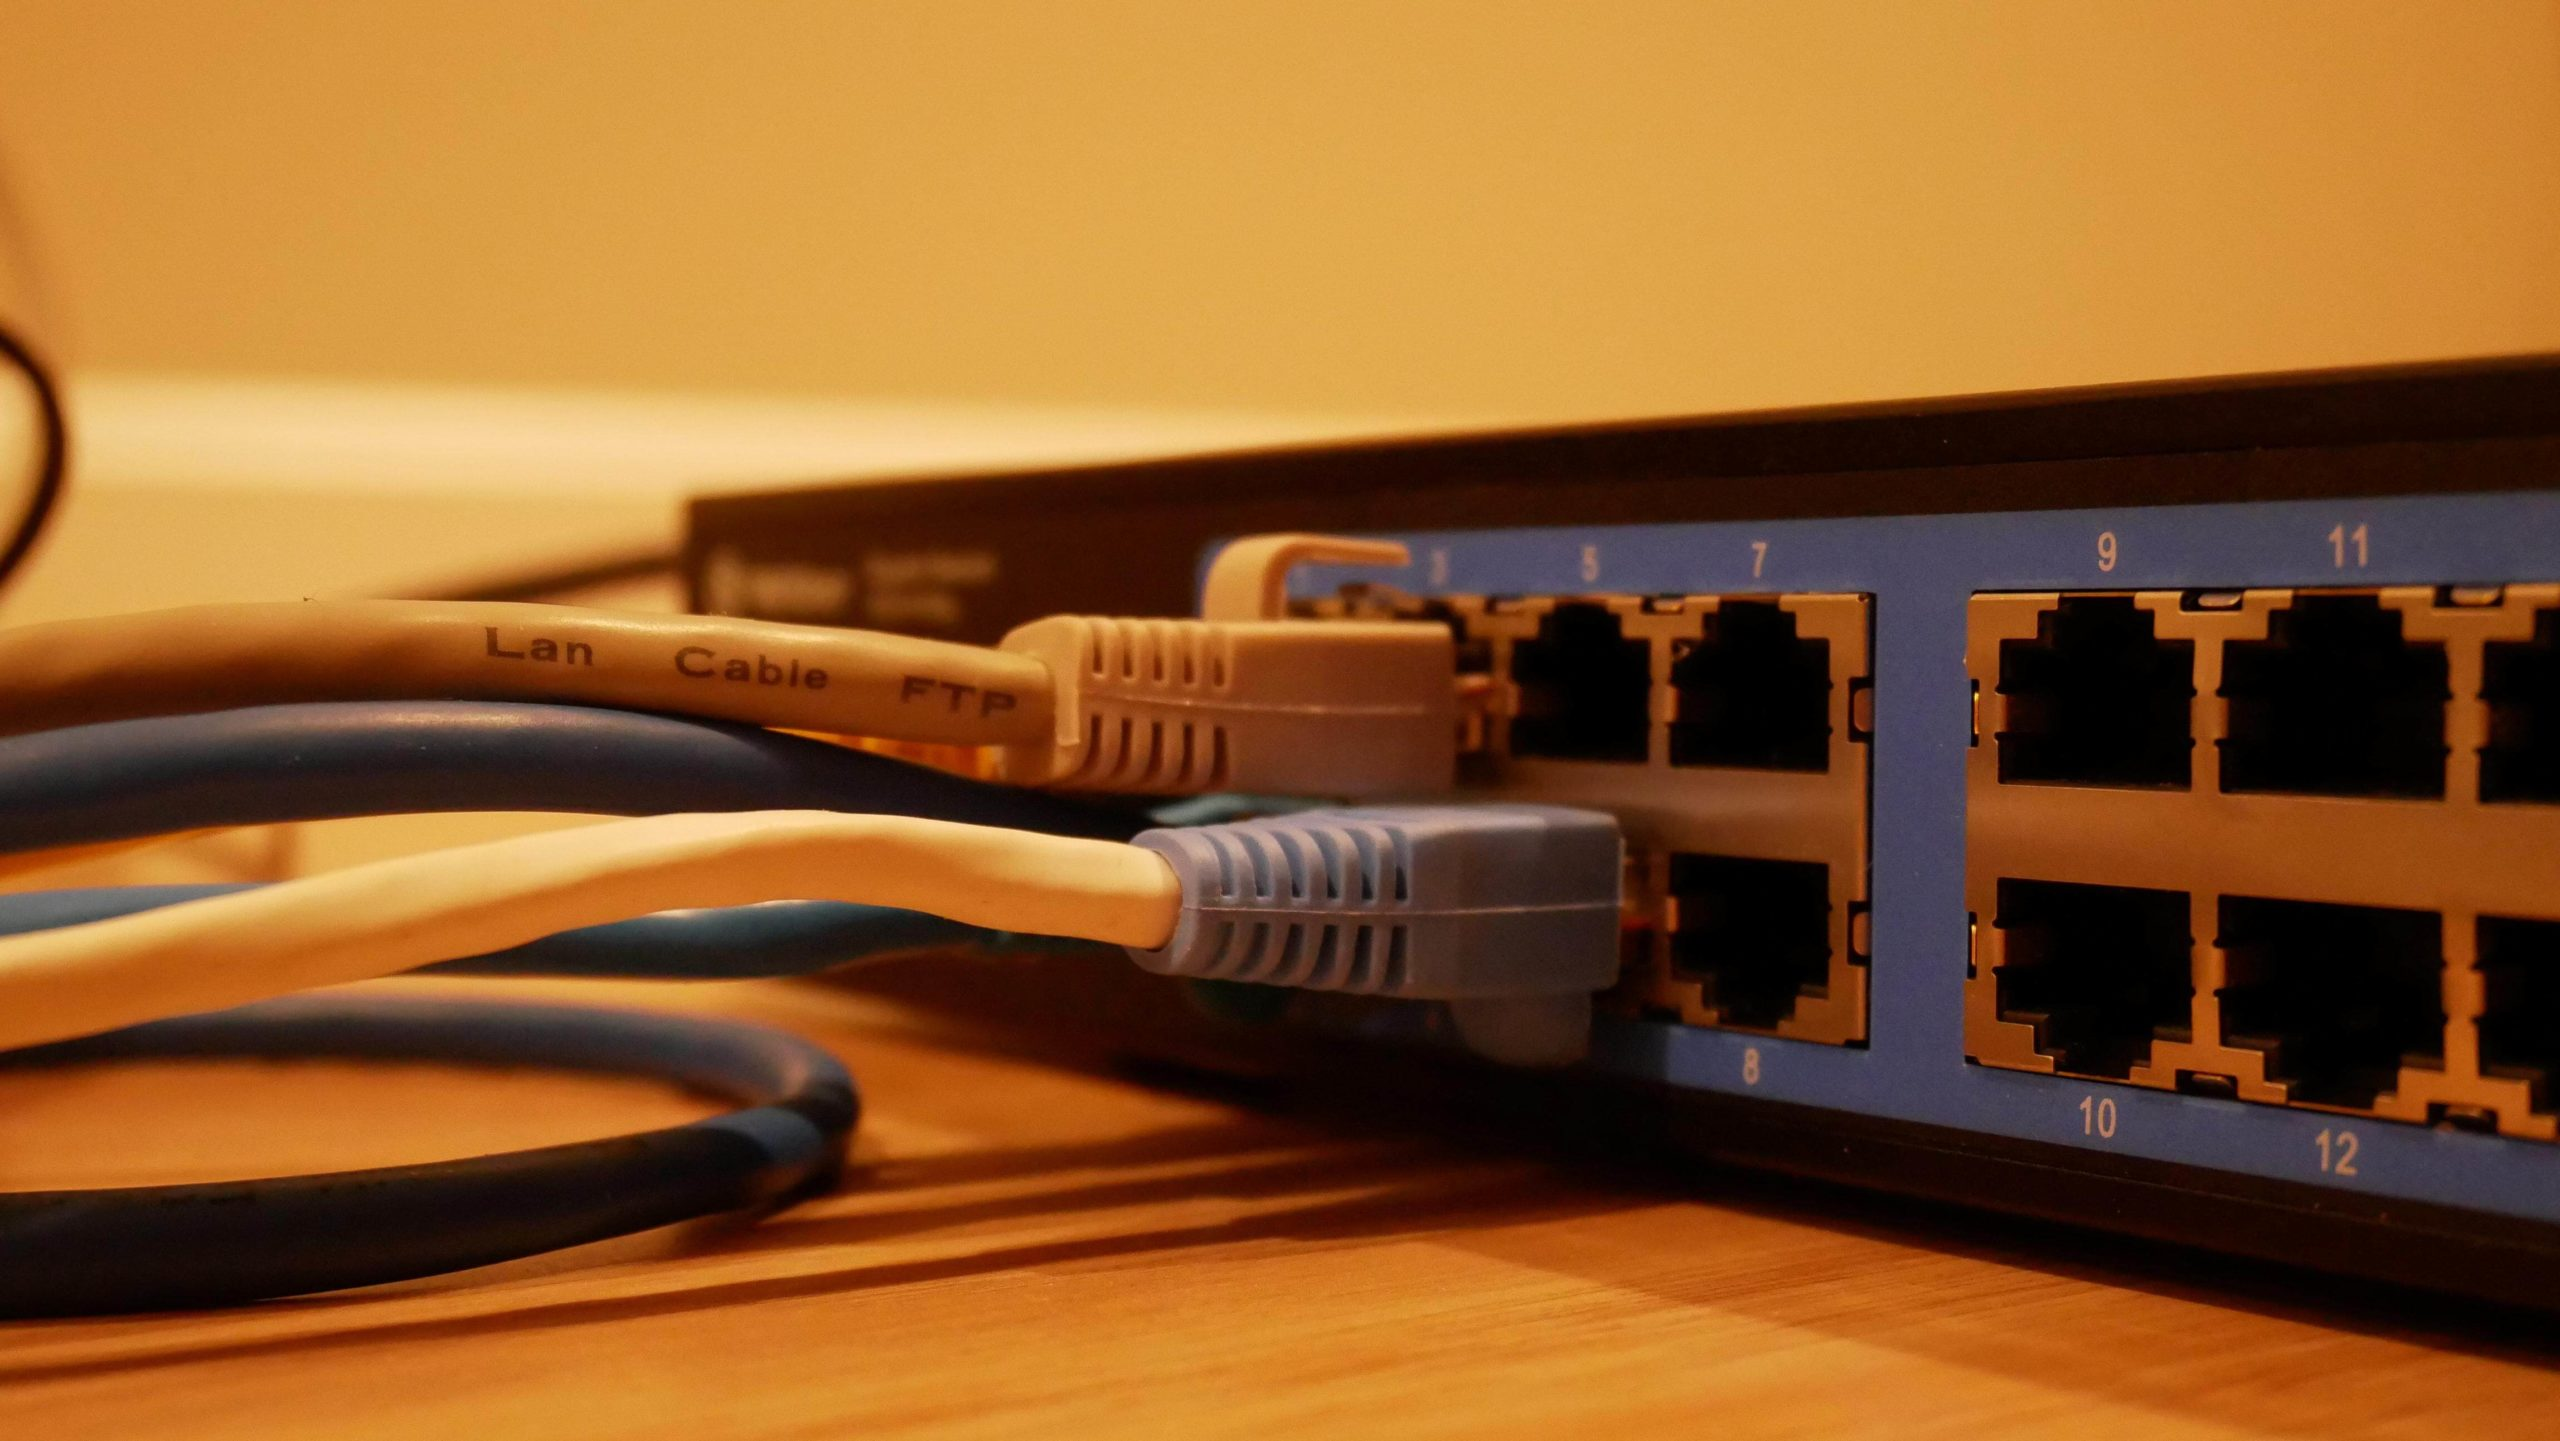 How To Reset Your Router